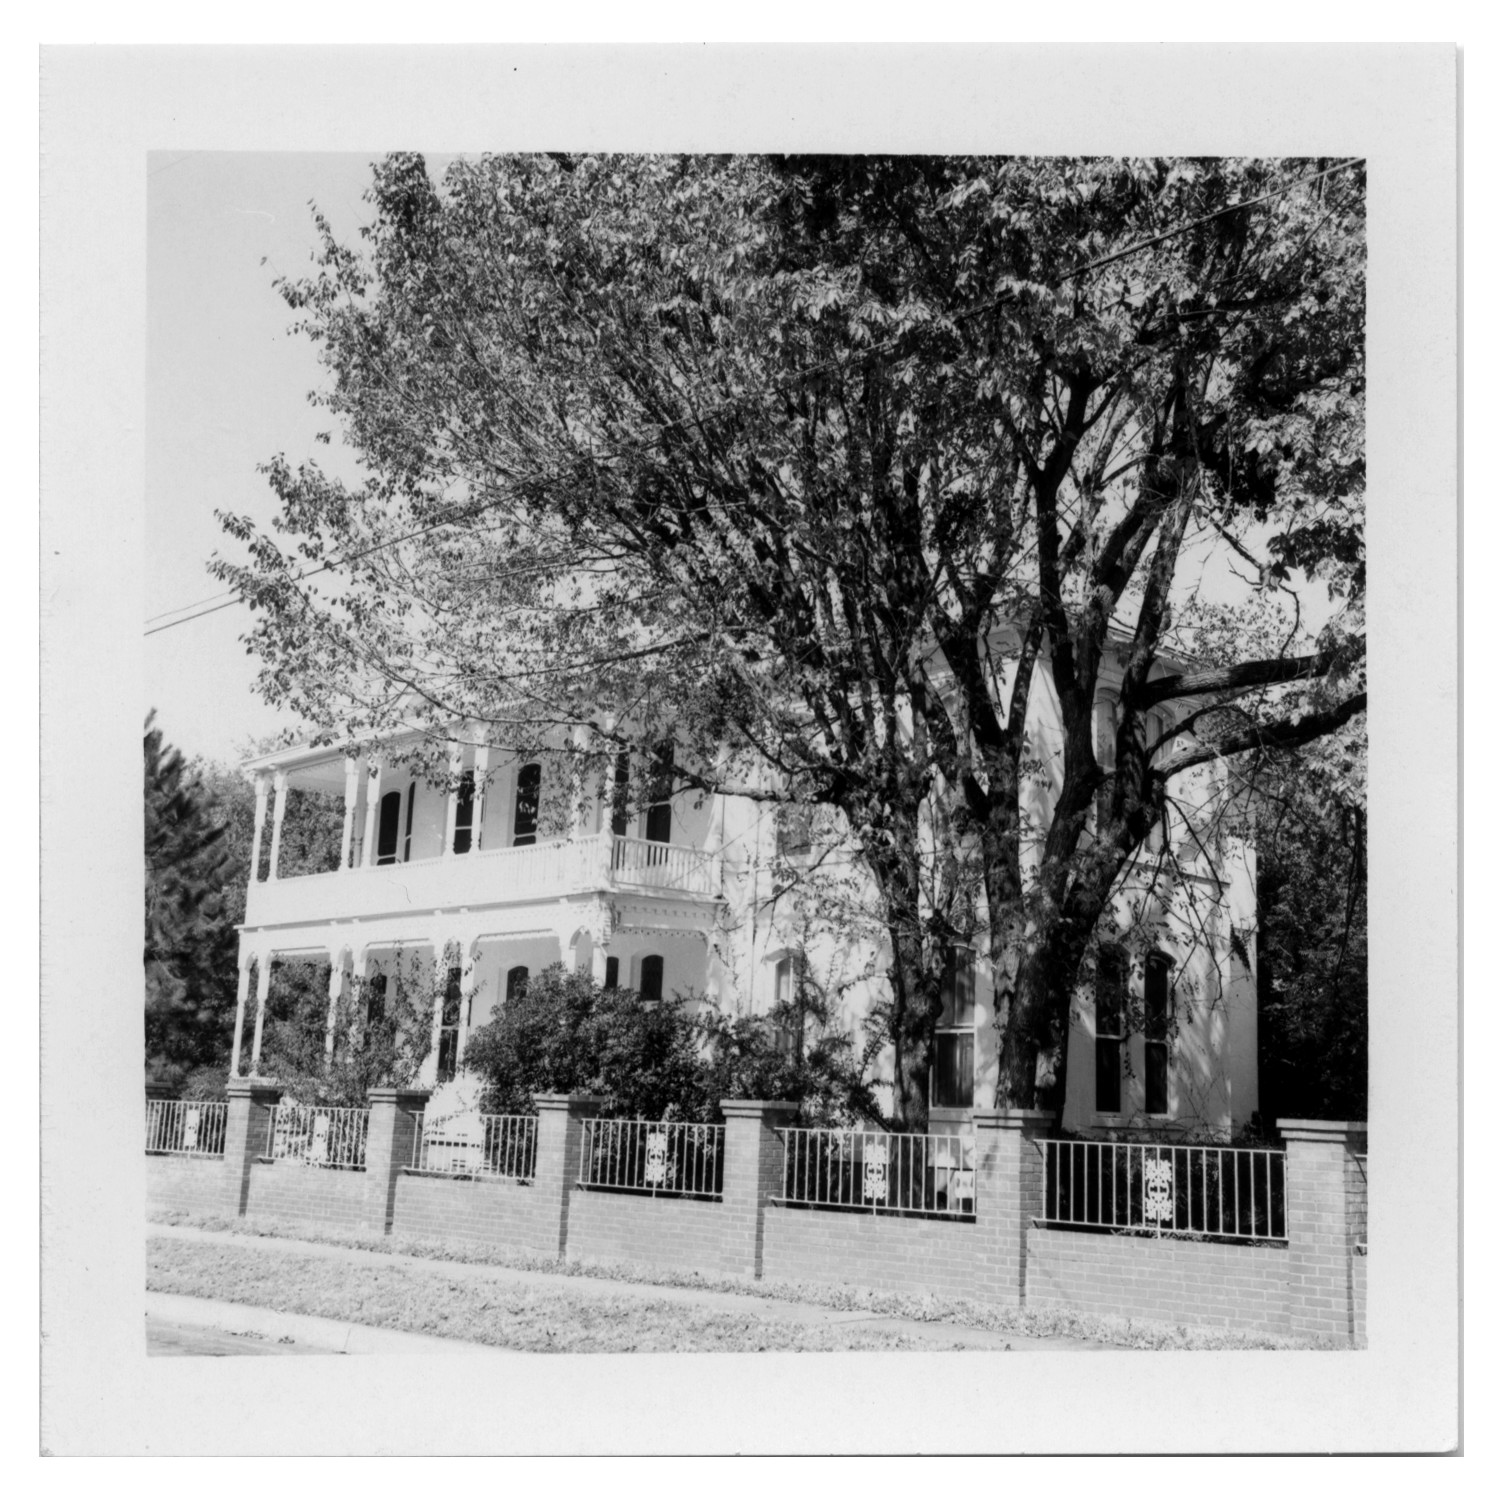 [619 S. Sycamore - A.R. Howard Home]                                                                                                      [Sequence #]: 1 of 1